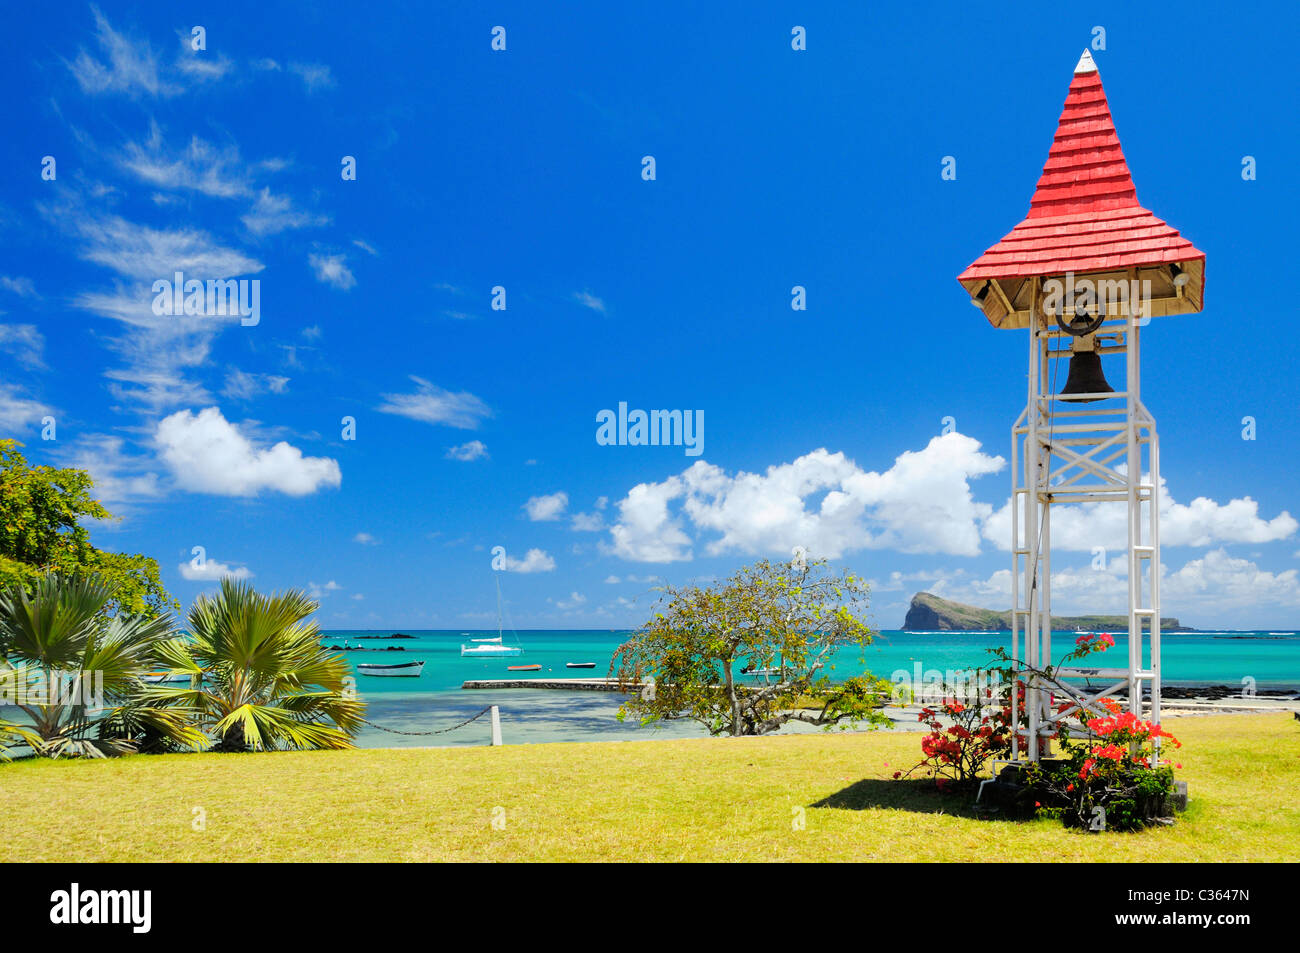 The garden of the famous landmark church with a red roof in Cap Malheureux, Riviere du Rempart, Mauritius. - Stock Image